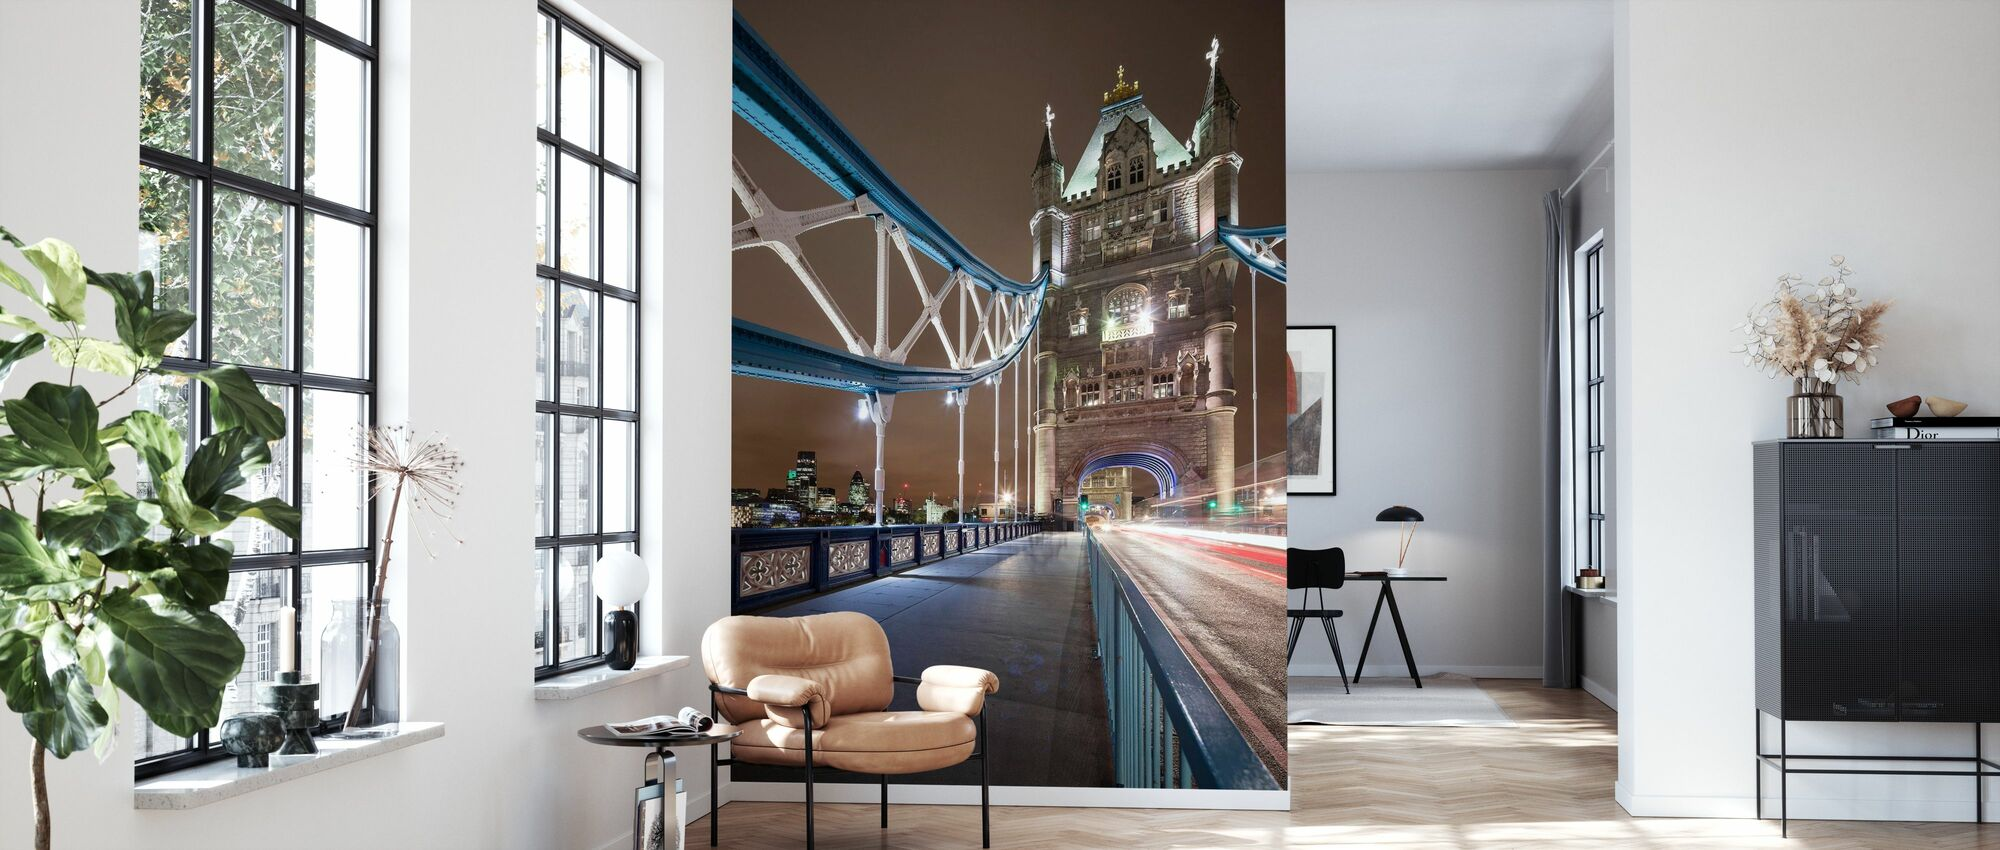 Standing on London Bridge III - Wallpaper - Living Room